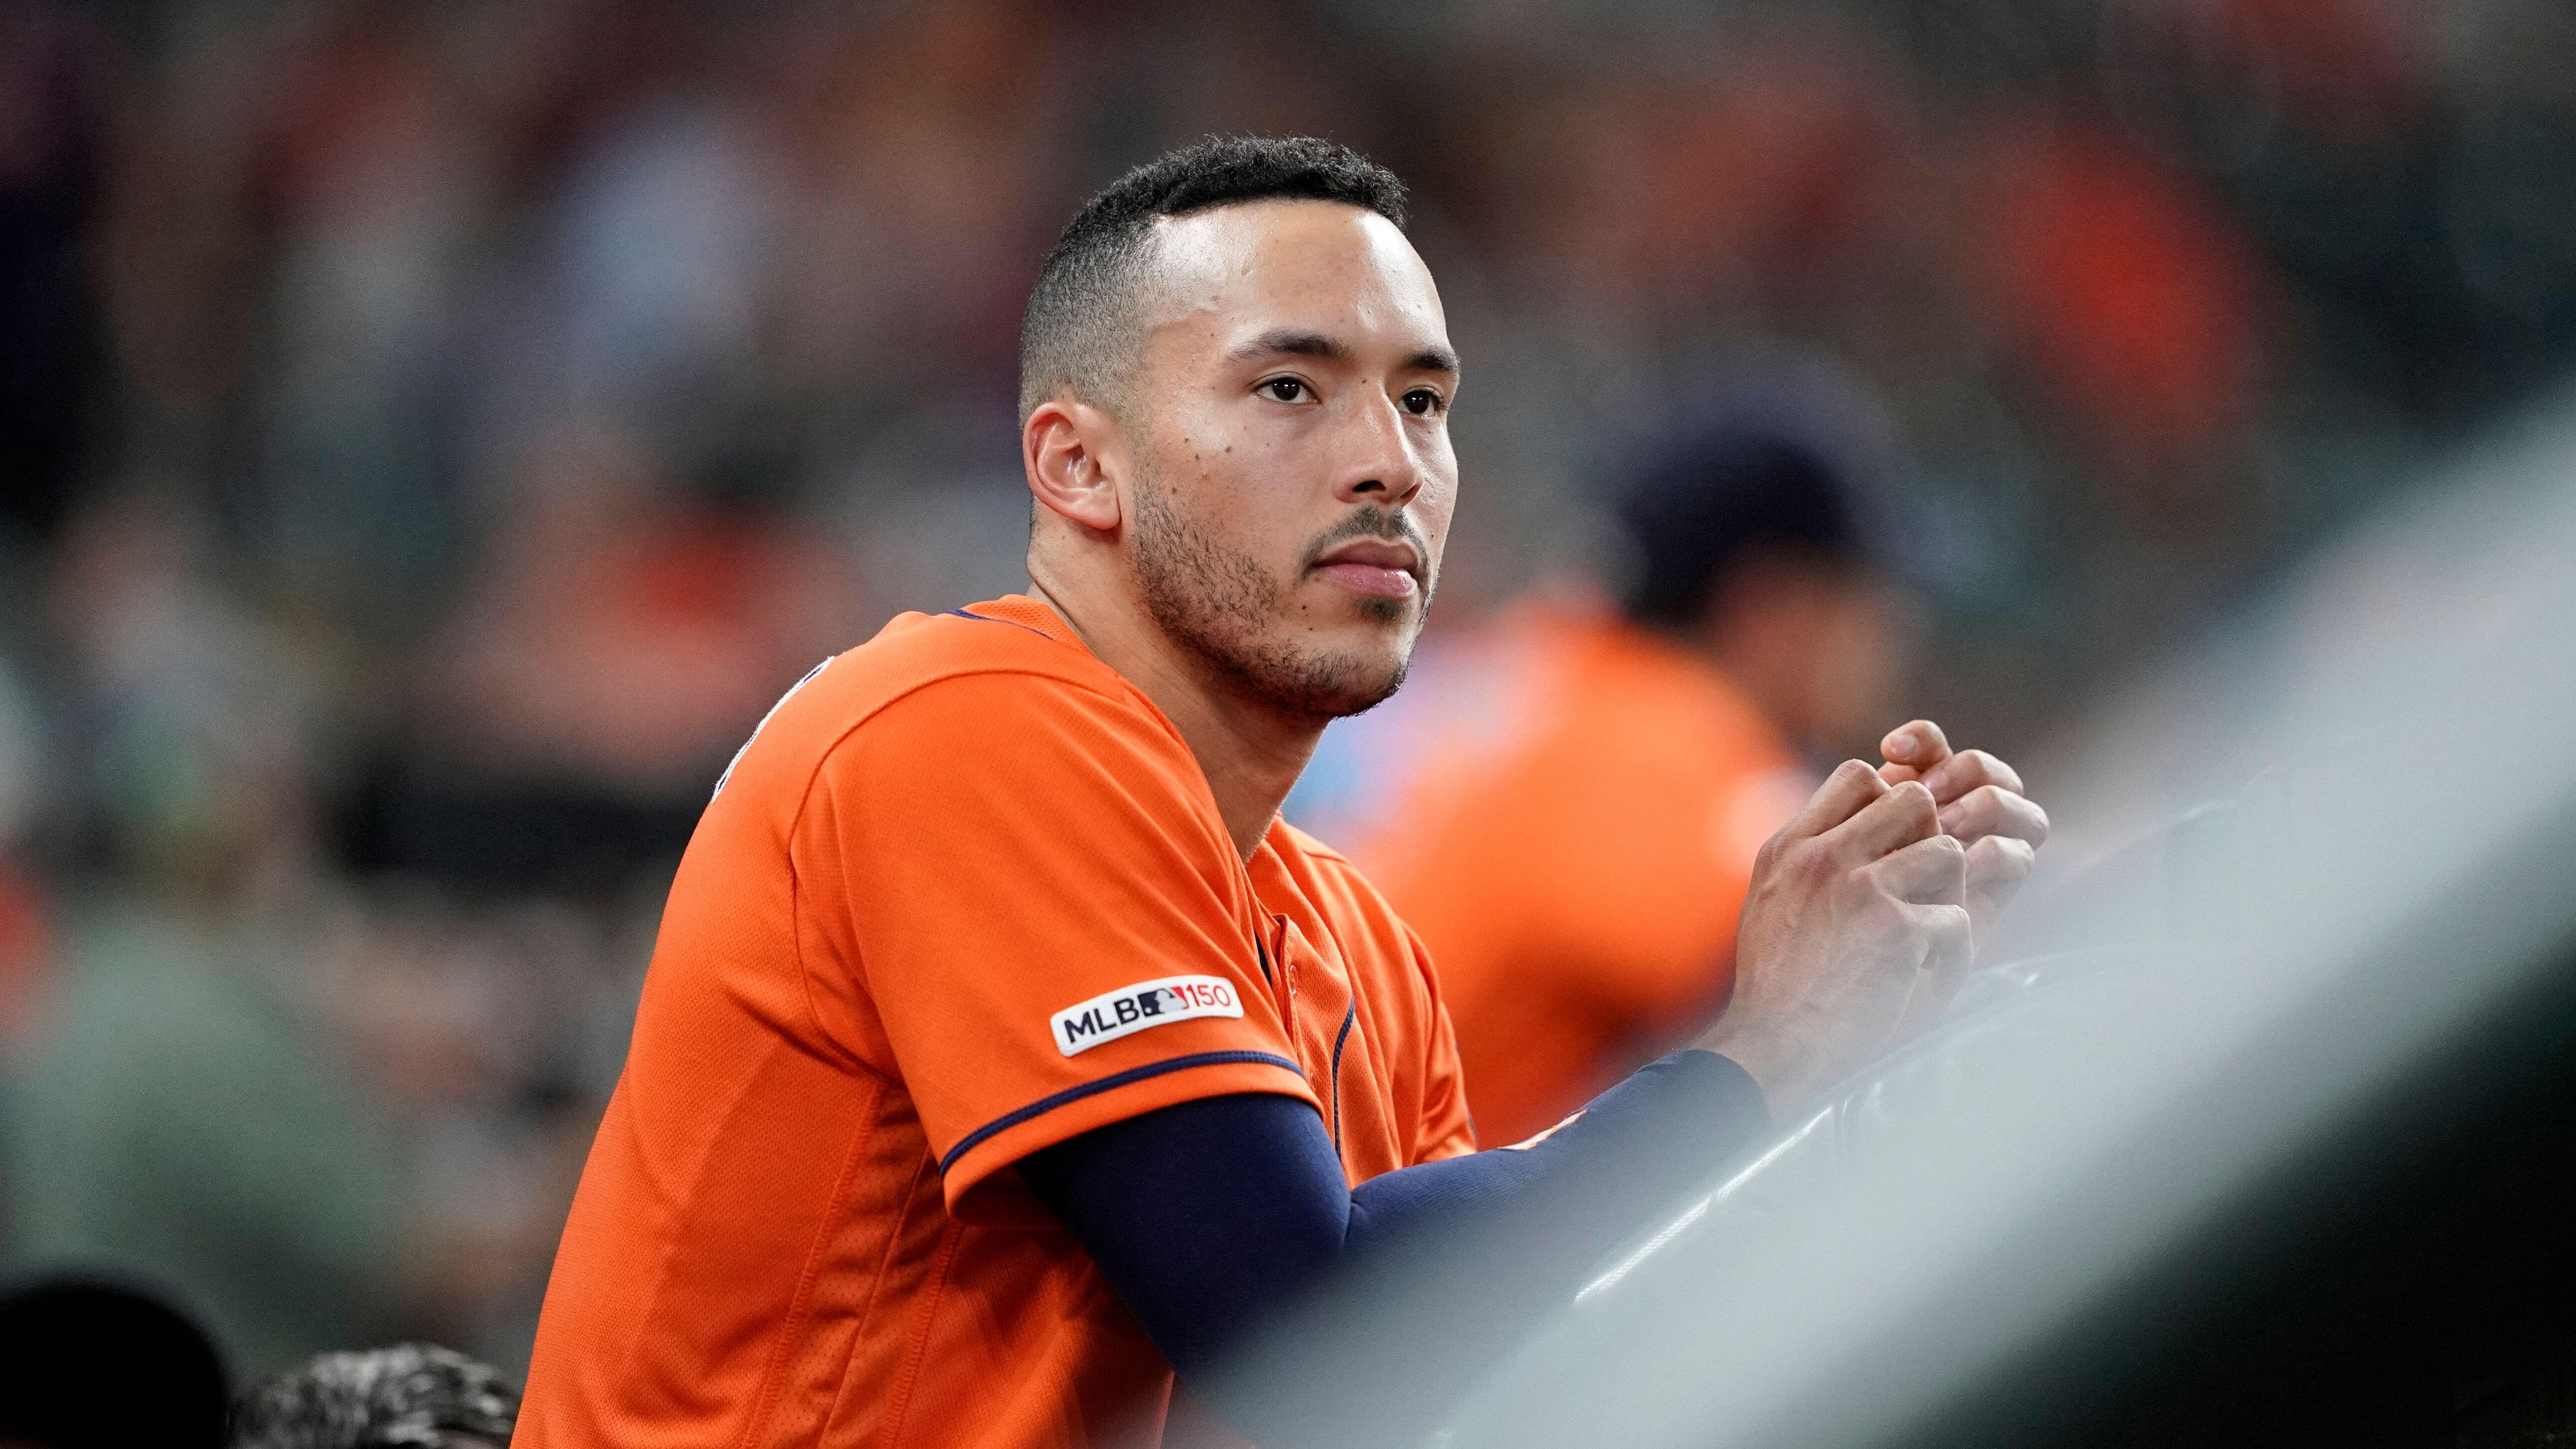 f2d397e9b Carlos Correa to miss time with rib injury